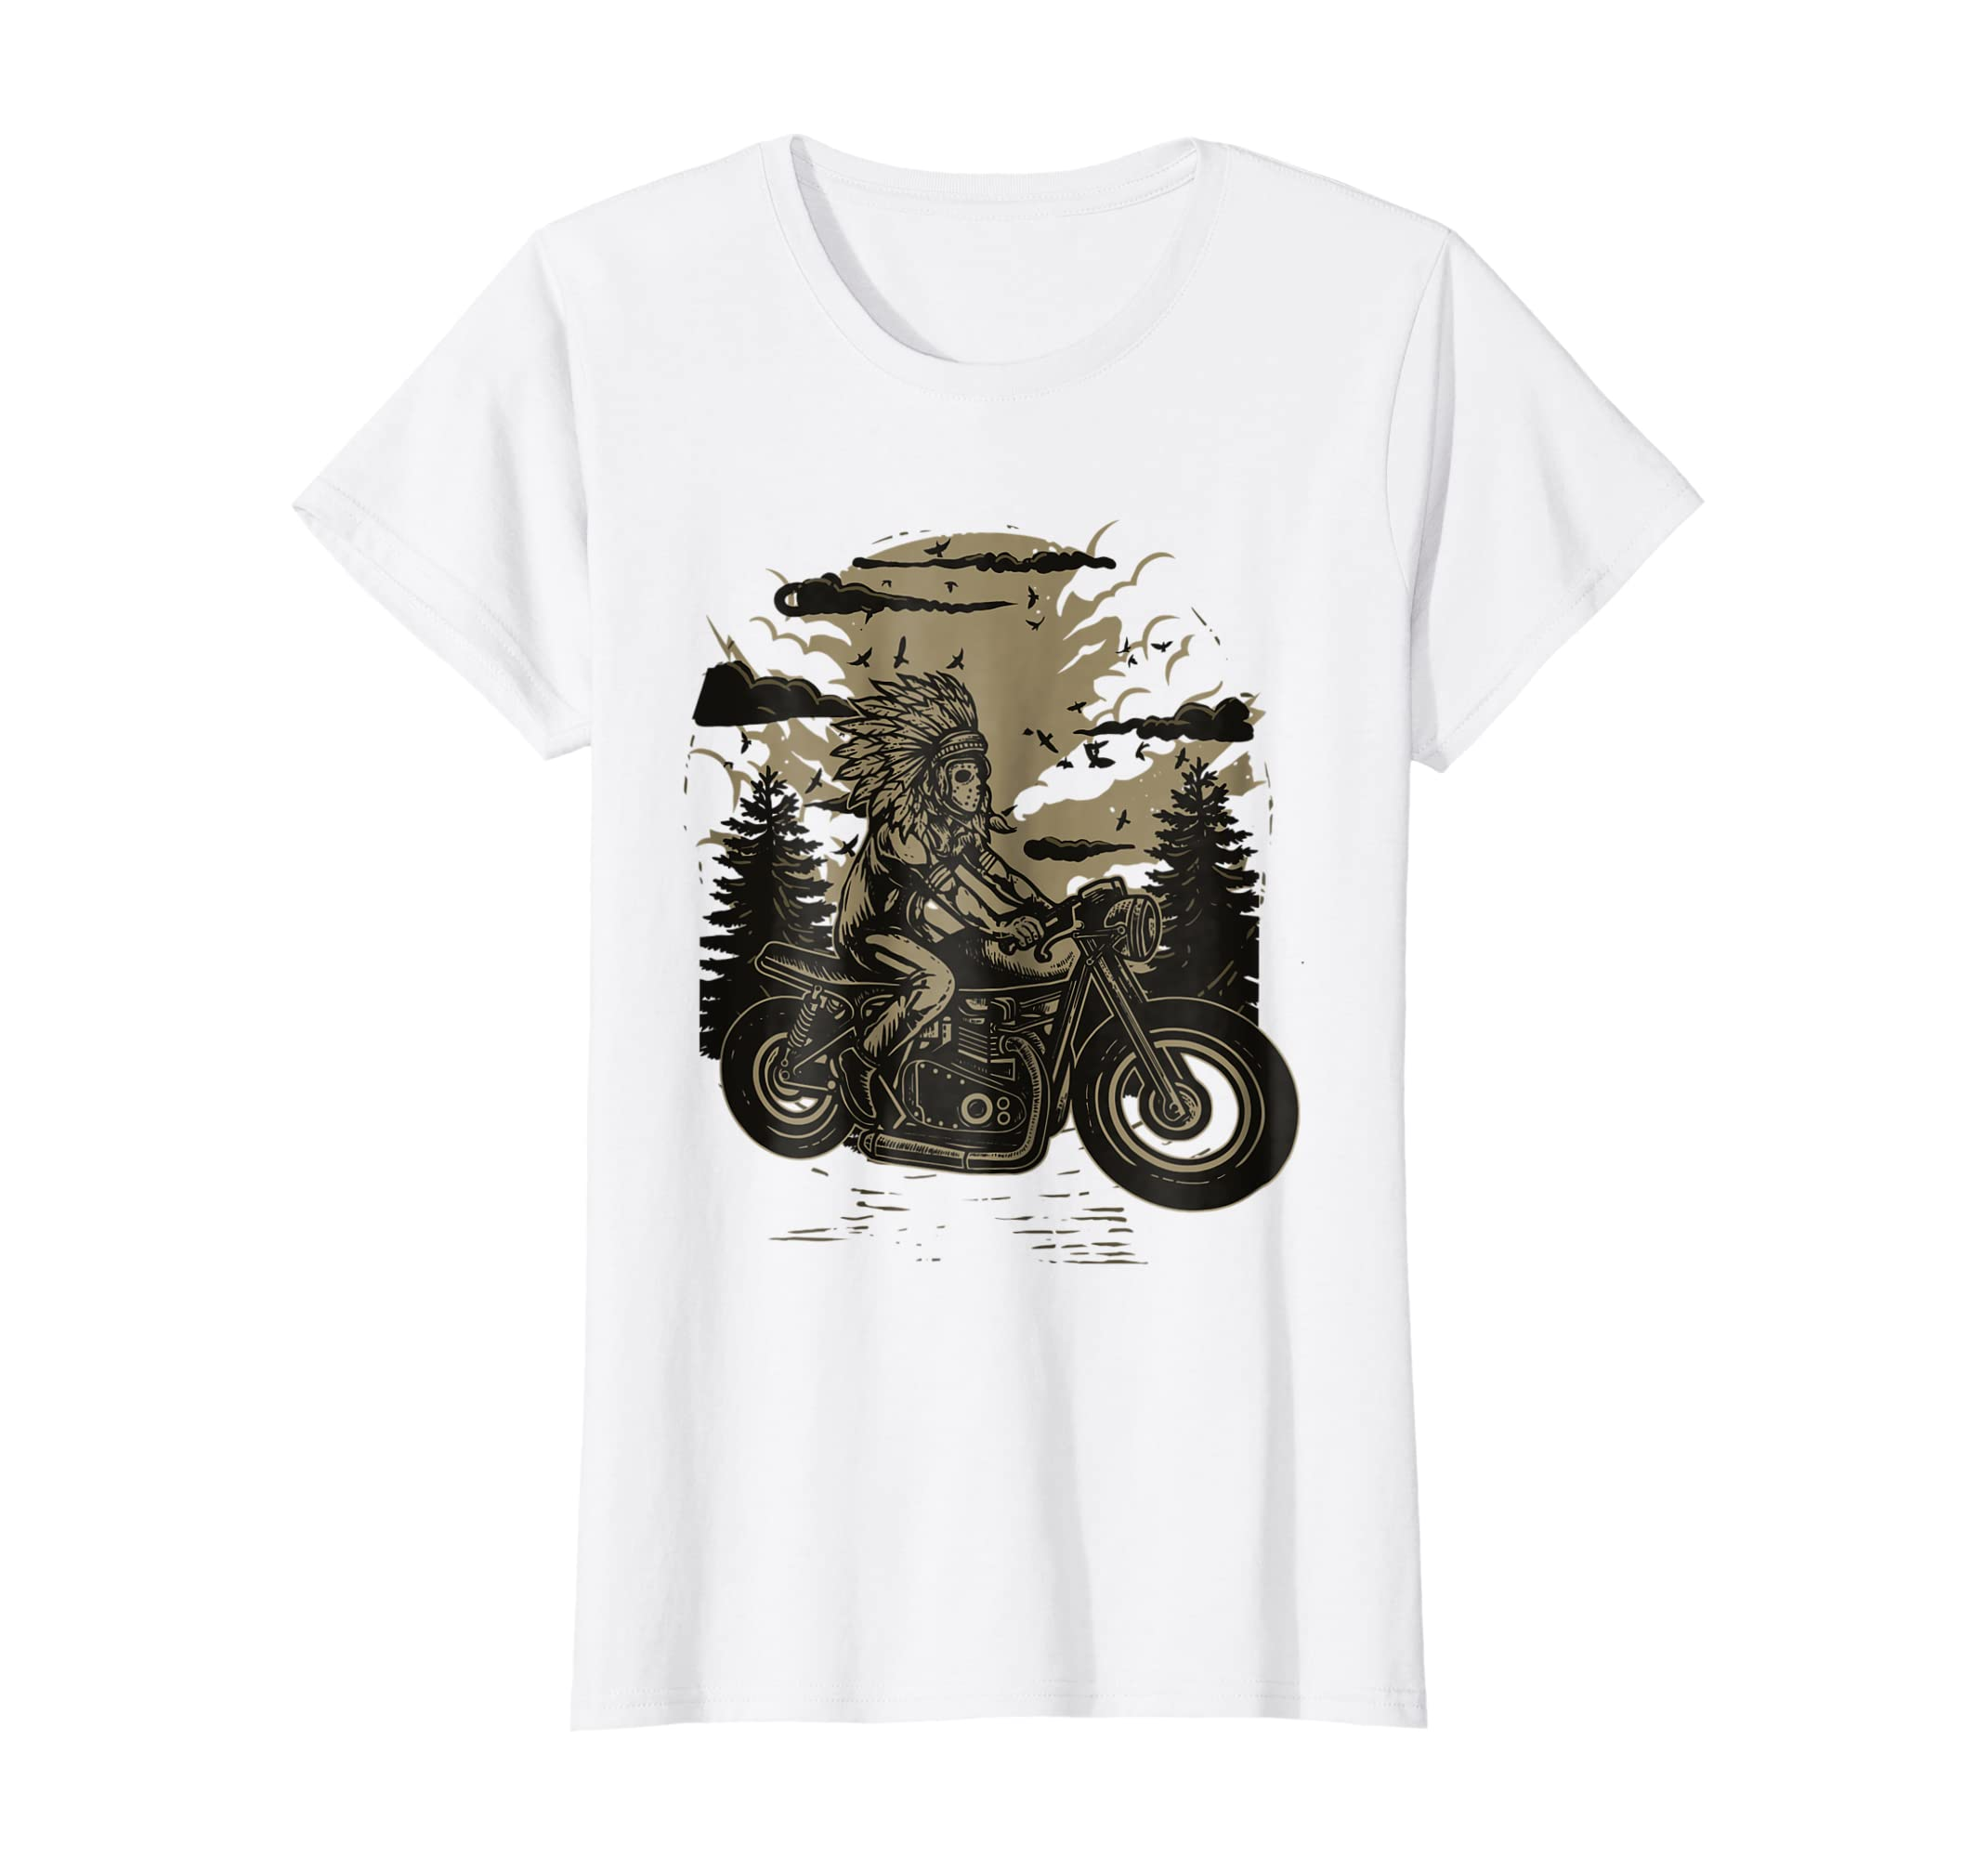 f85bc2db5 Amazon.com: Biker Native American Indian Motorbike Motorcycle T Shirt:  Clothing